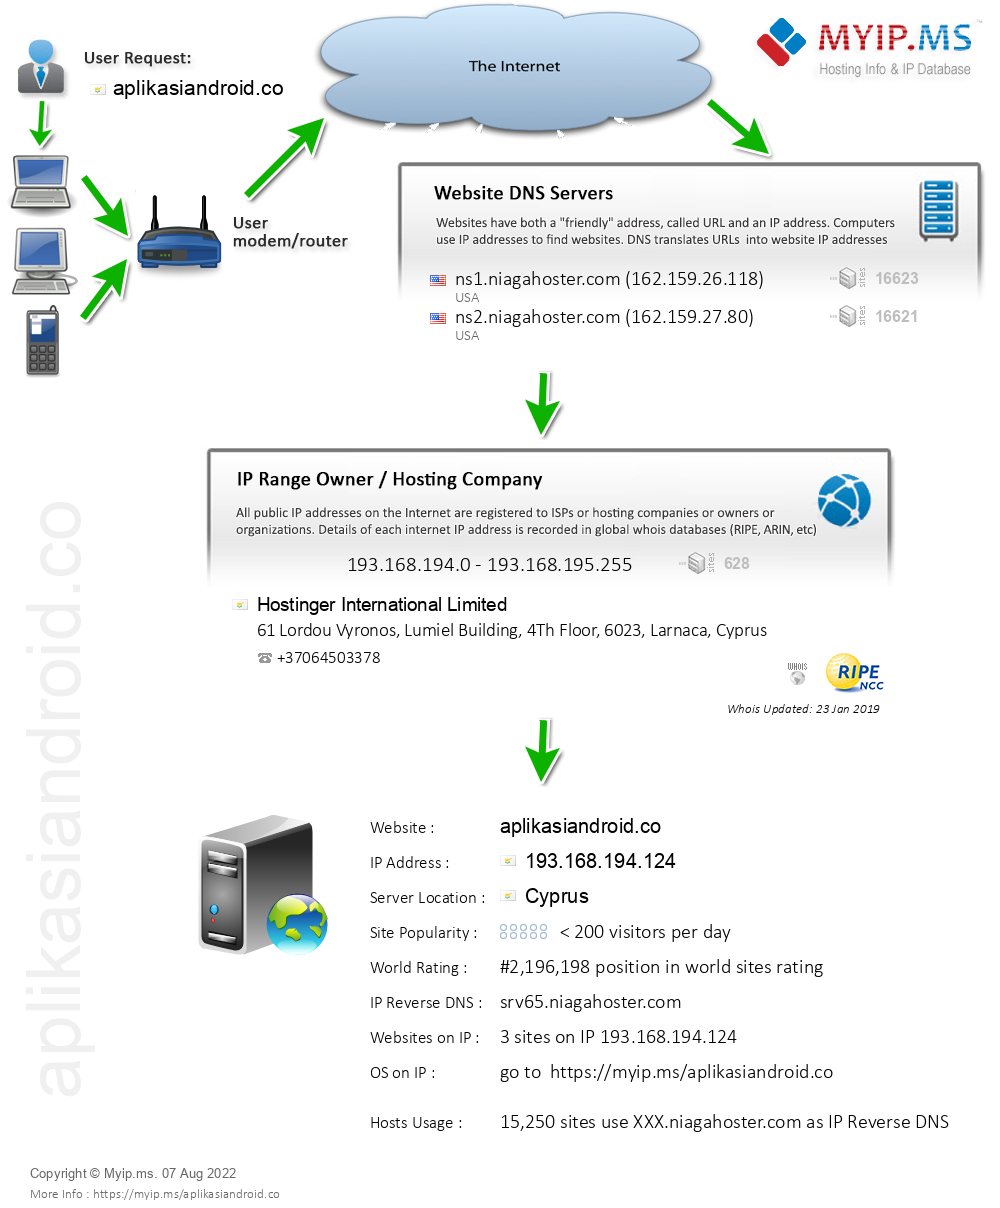 Aplikasiandroid.co - Website Hosting Visual IP Diagram